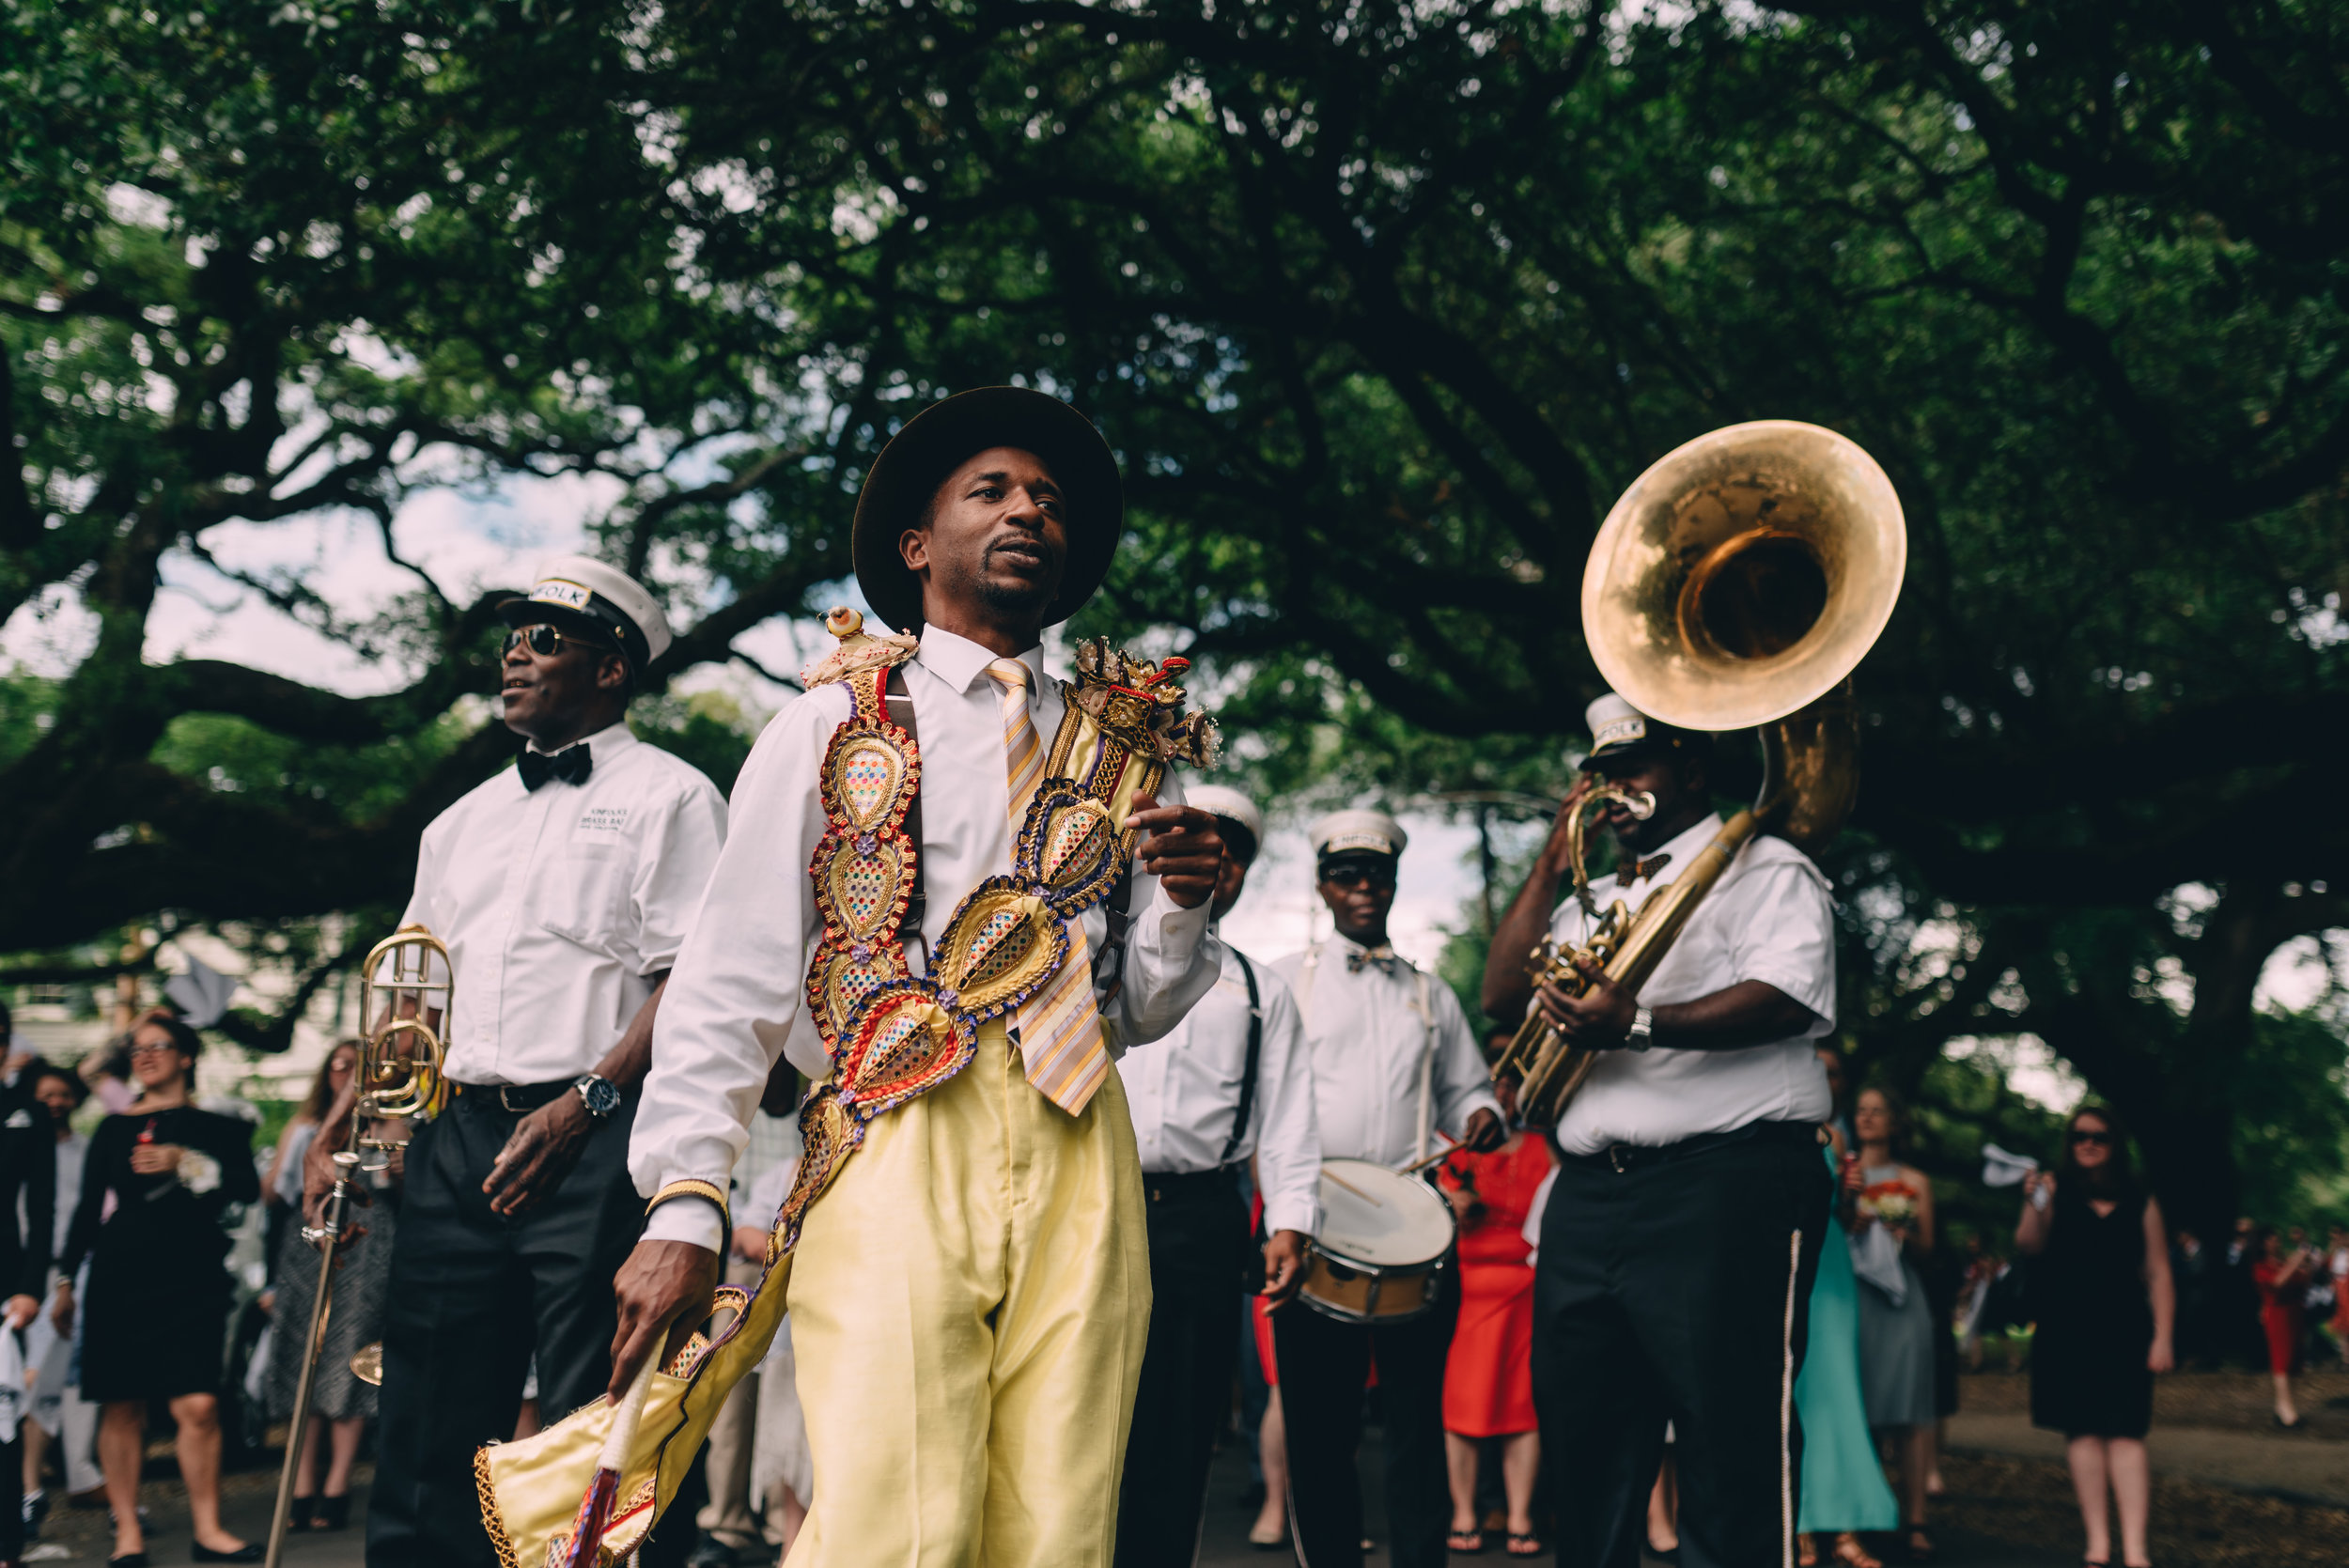 Second line frontman leading the way for guests at New Orleans Wedding near Felicity Church